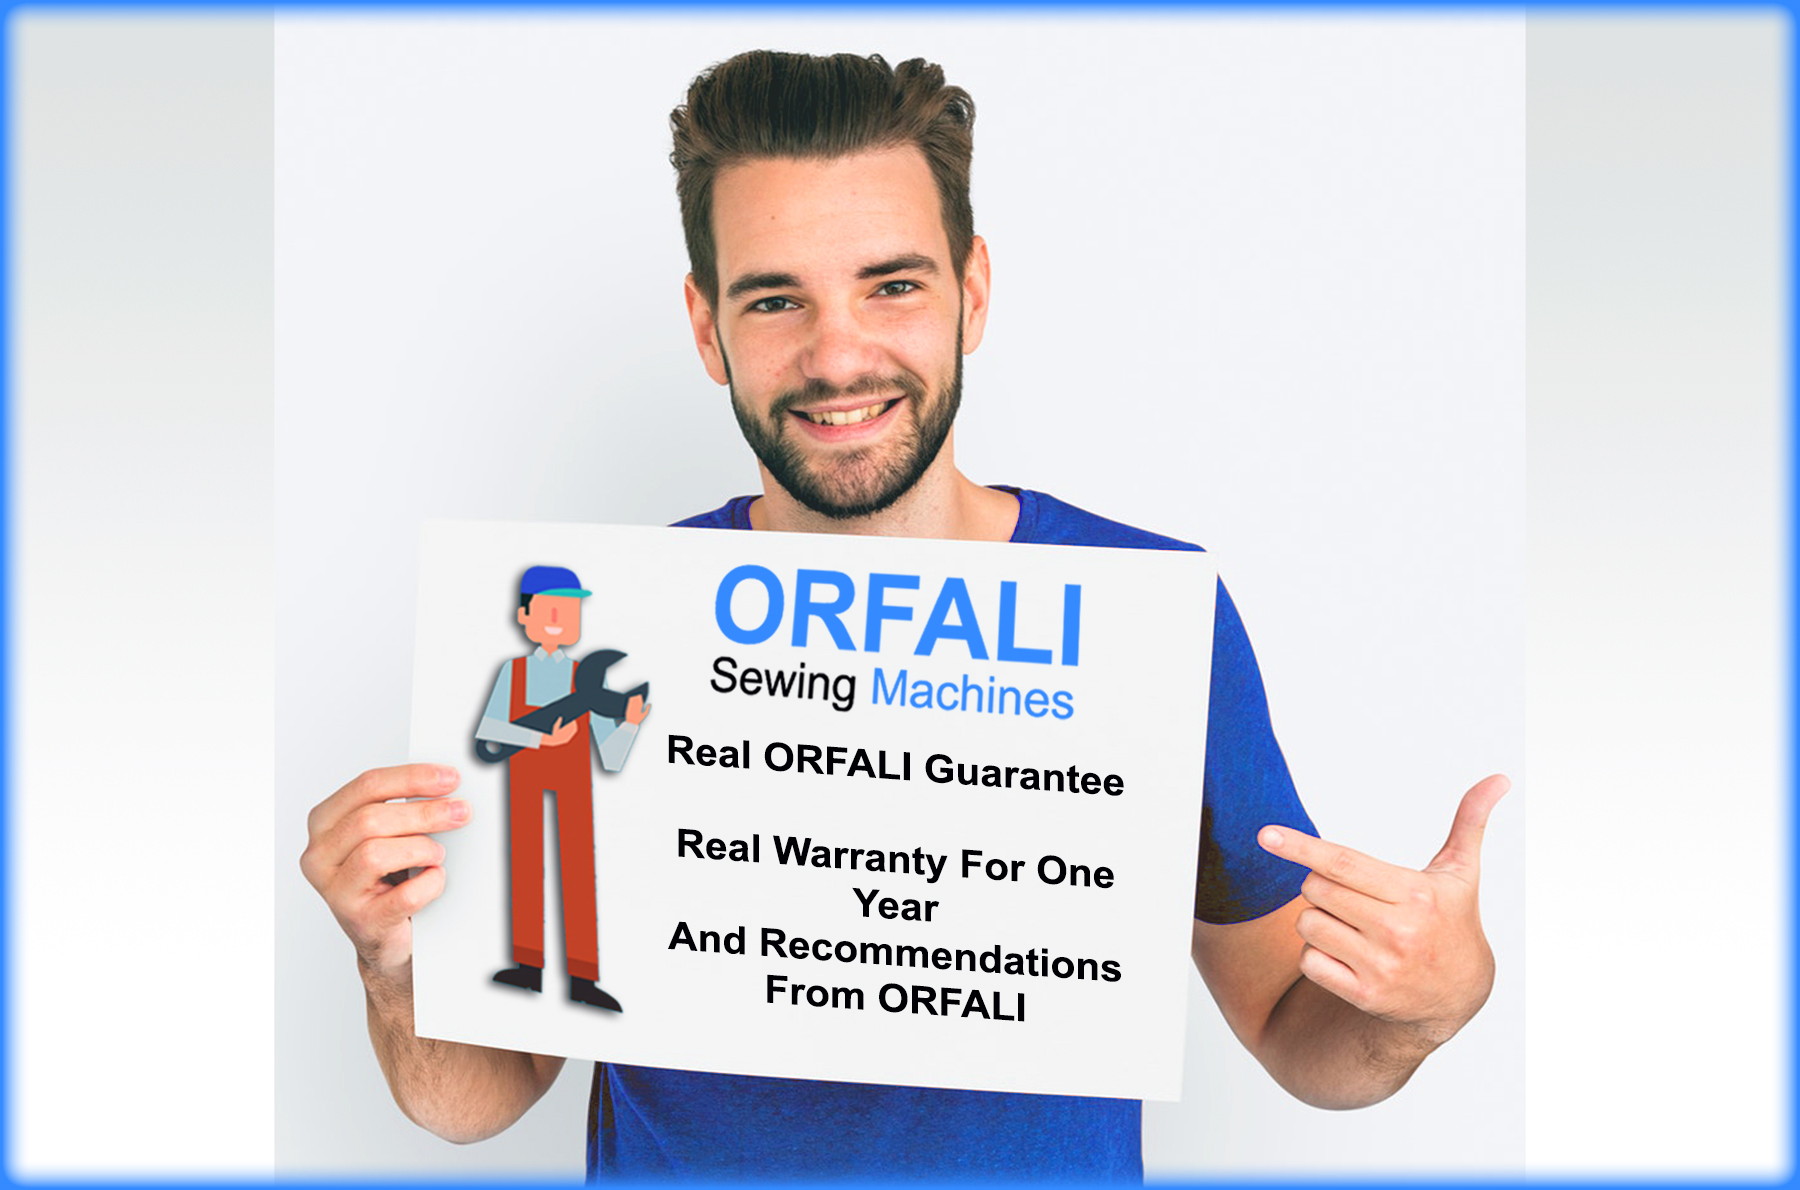 Real ORFALI guarantee